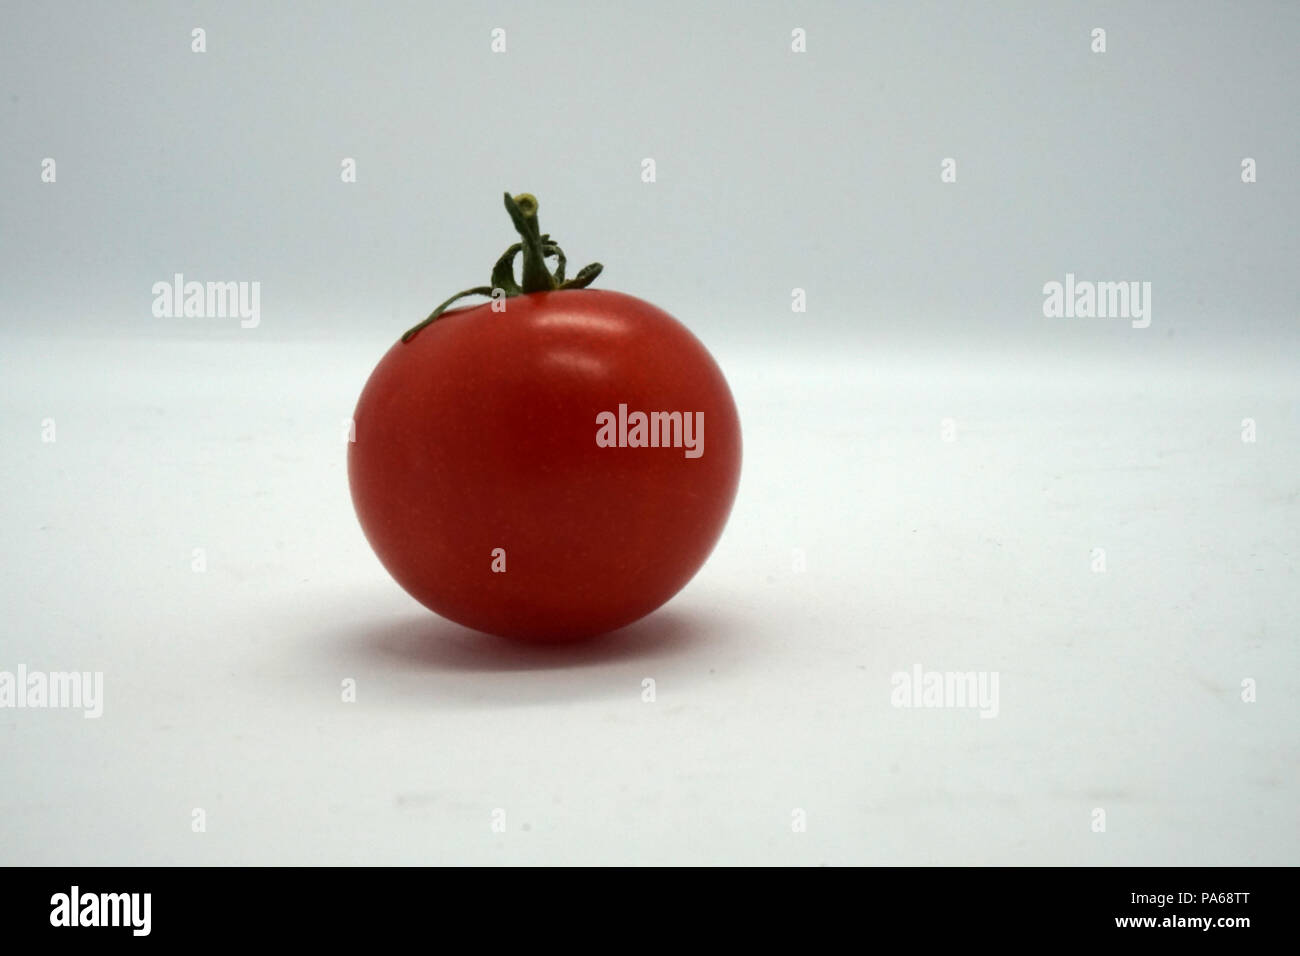 Rote einsame tomate Photo Stock